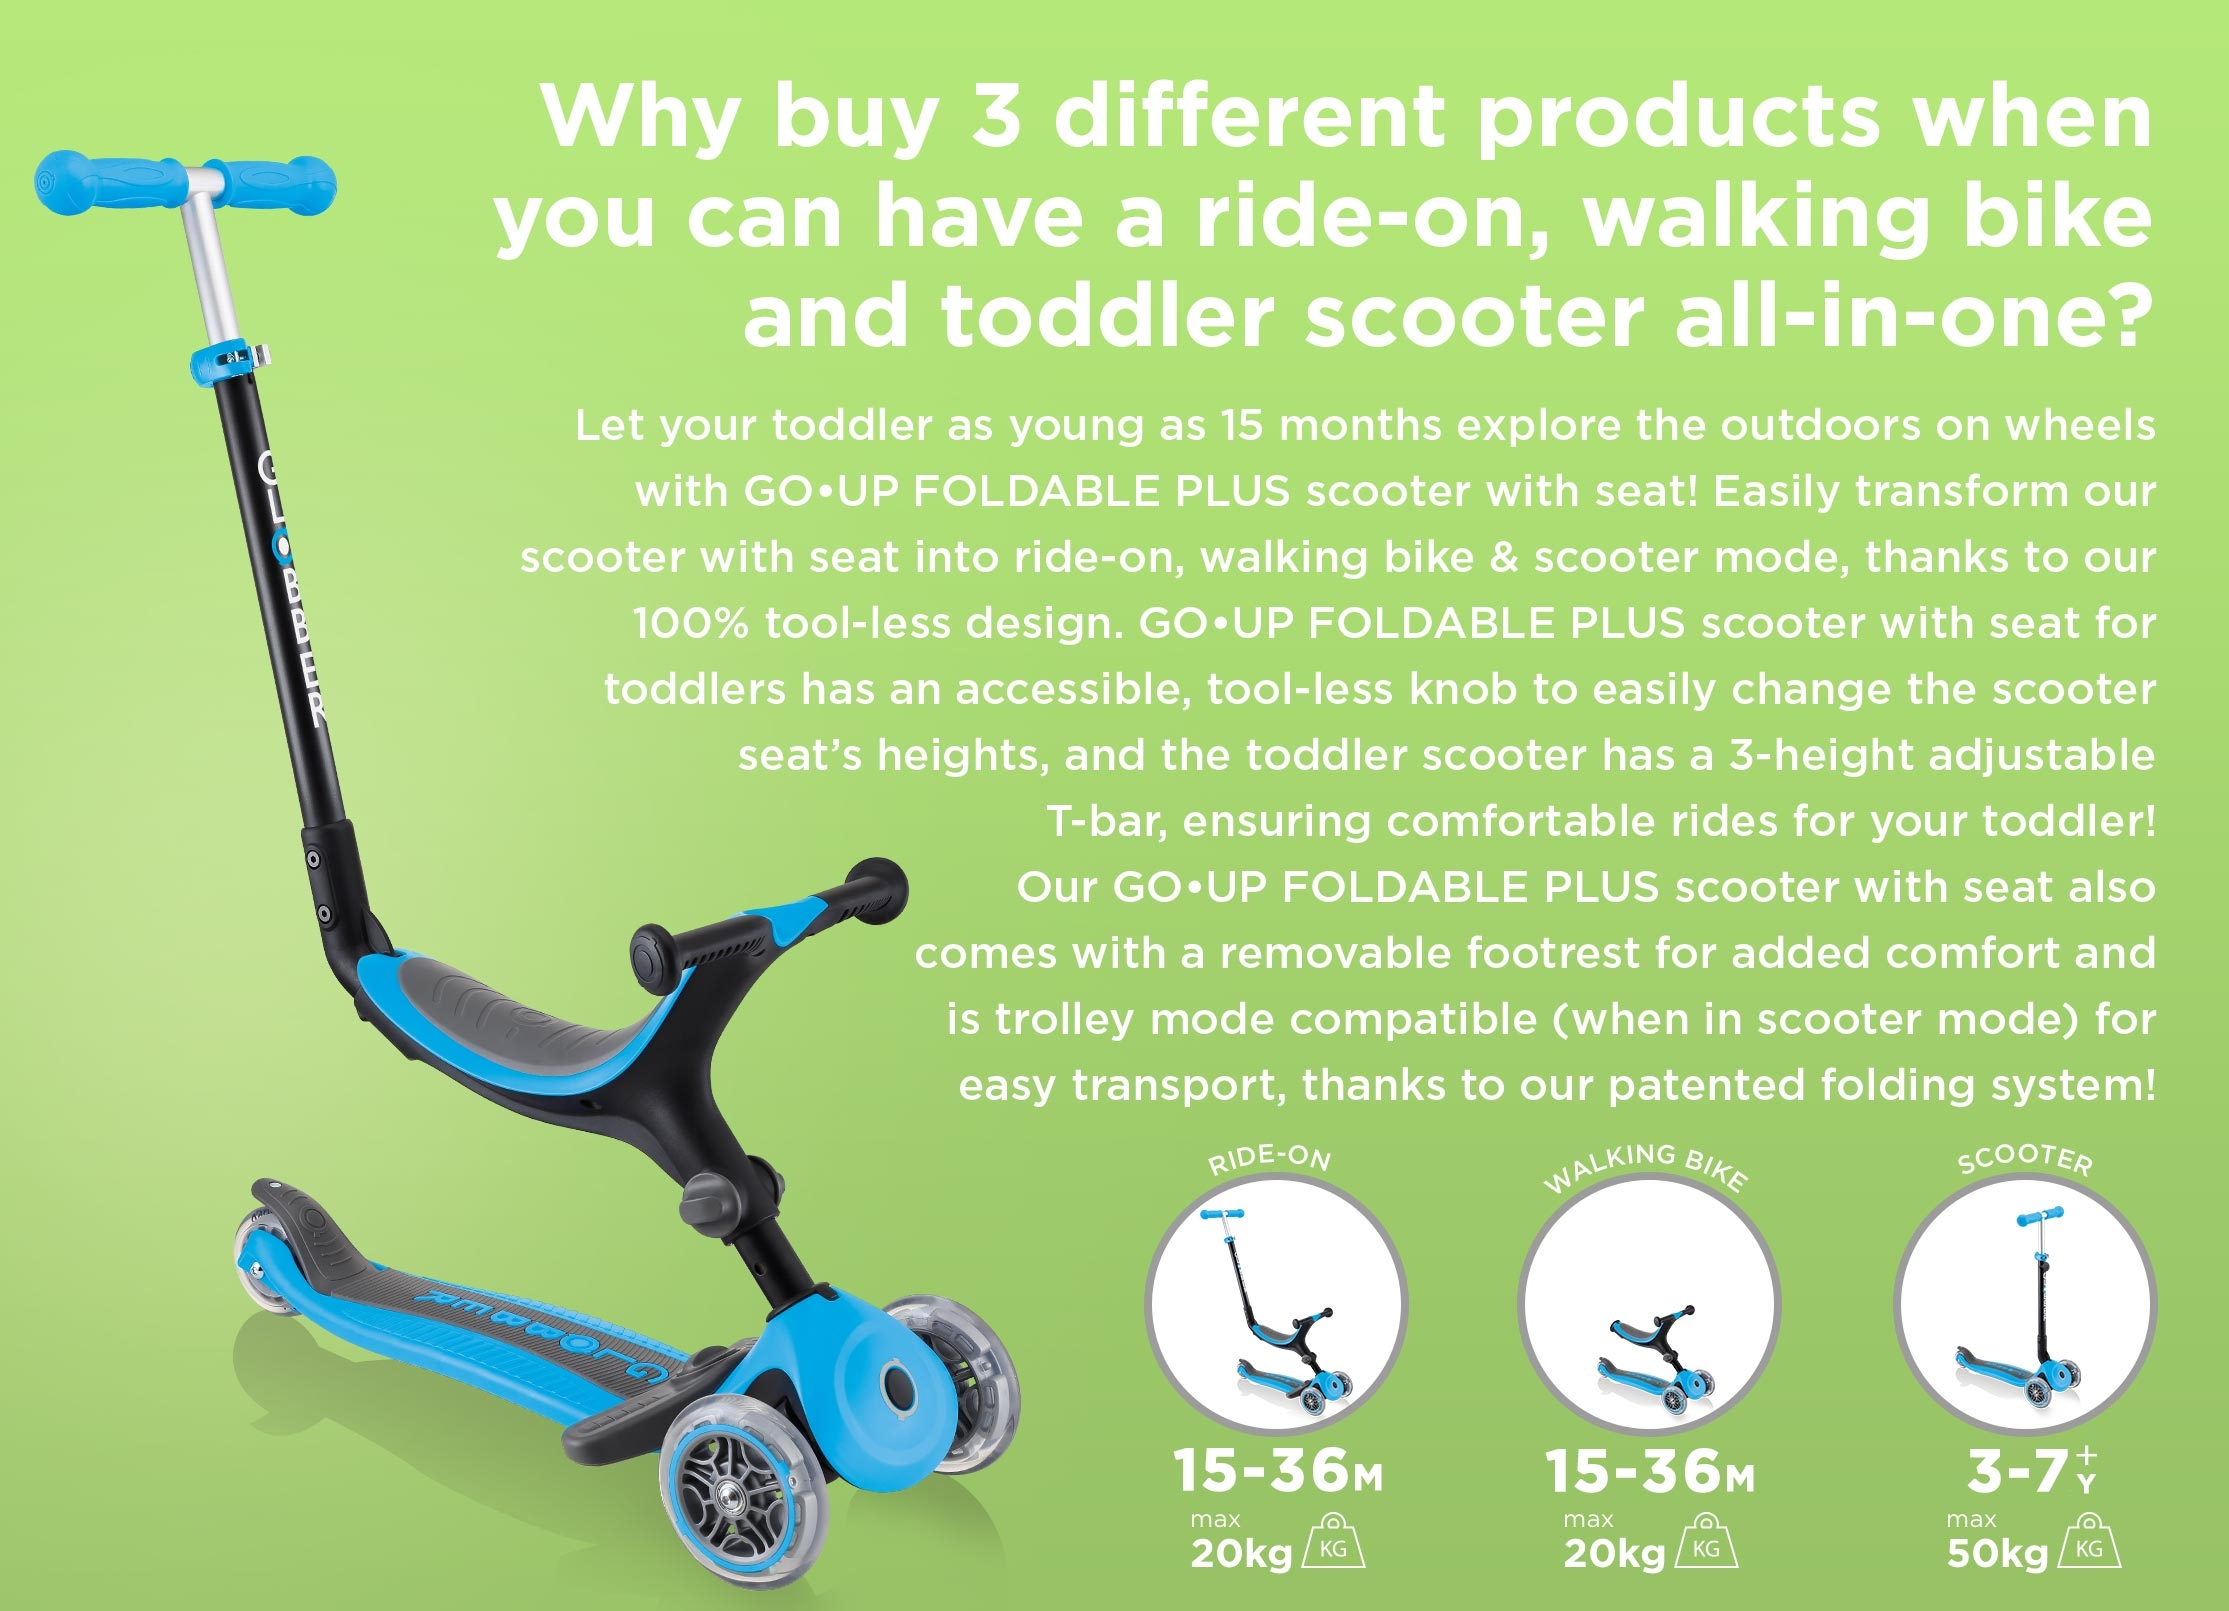 GO UP FOLDABLE PLUS is a 3 in 1 scooter with seat for toddlers